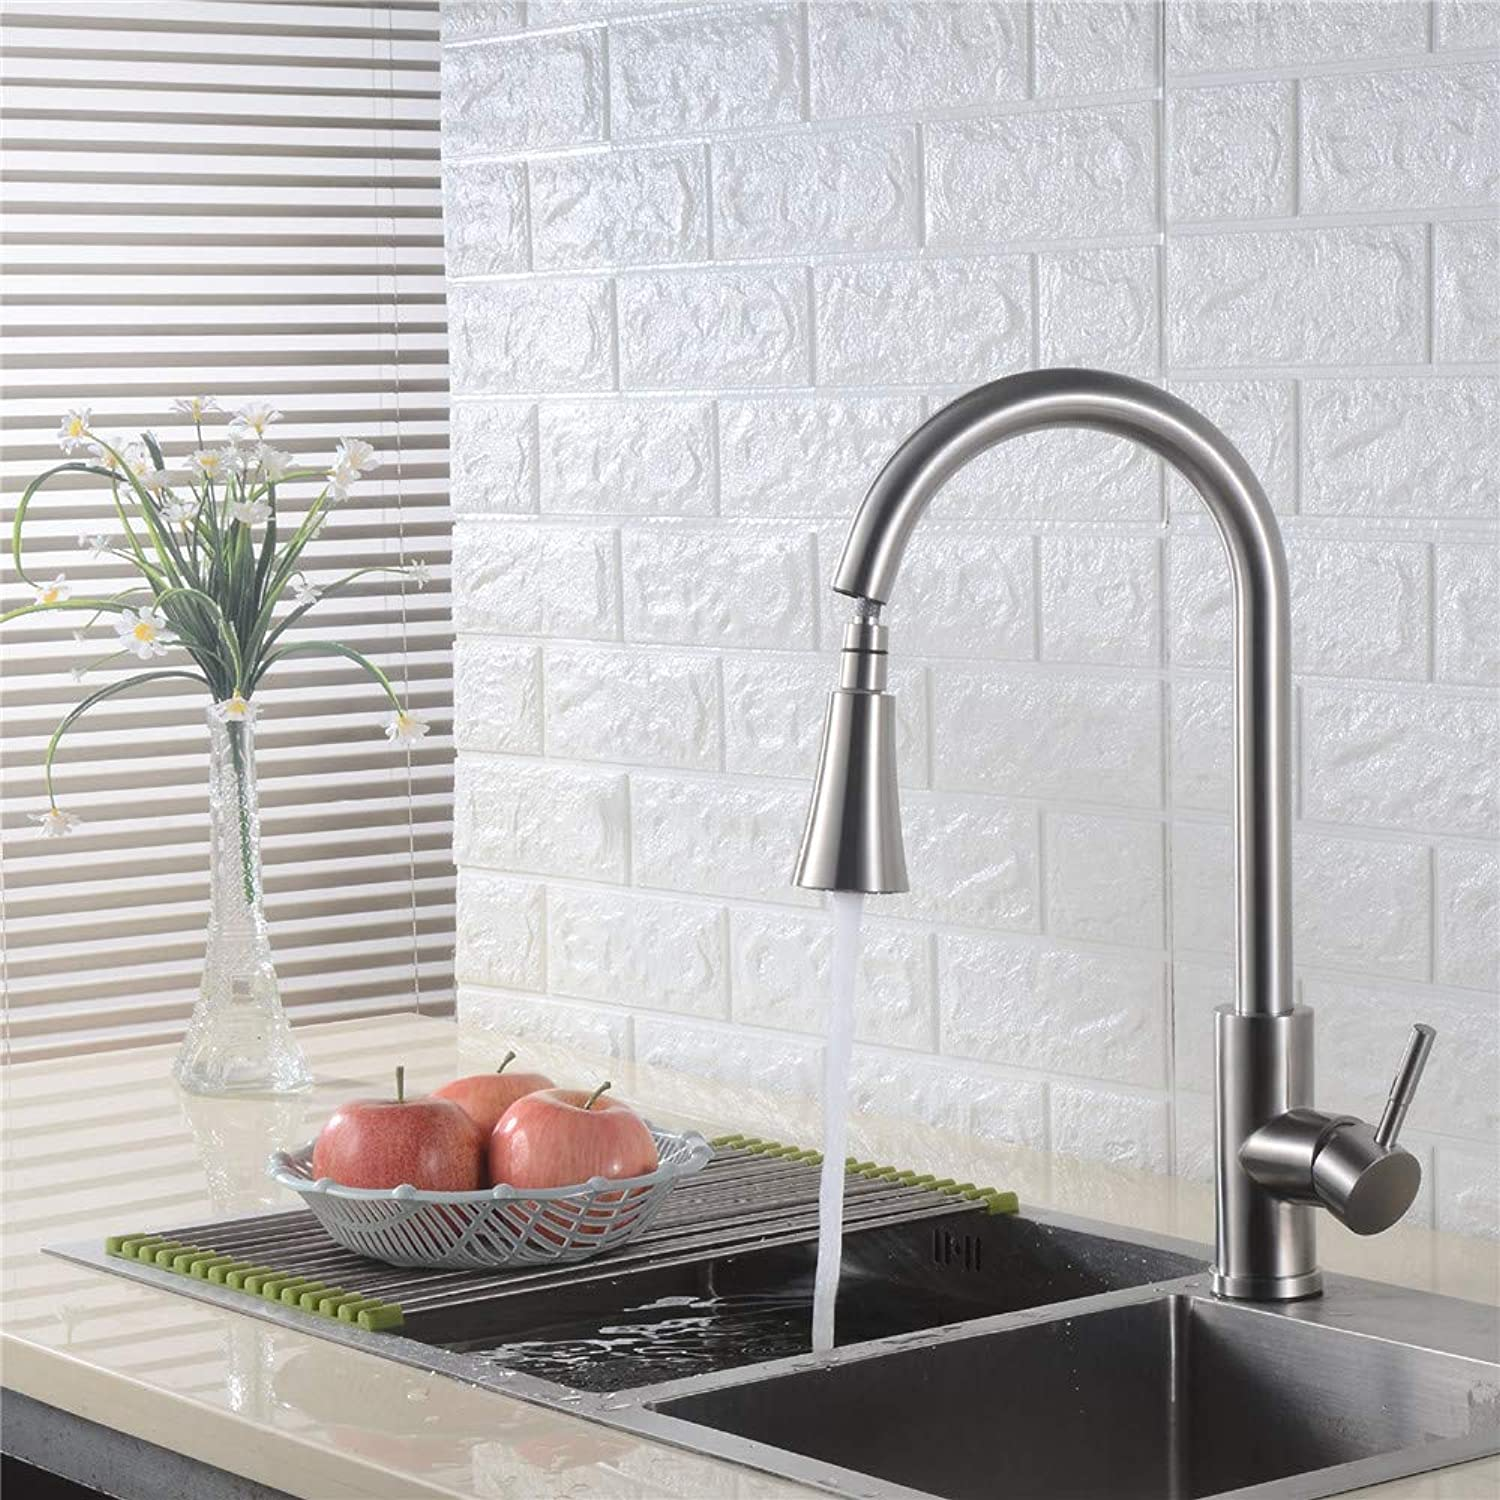 Oudan 304 Stainless Steel Multi-Function Pullout Kitchen Sink Faucet Caipen Hot and Cold Water Faucet Two Tranches (color   -, Size   -)